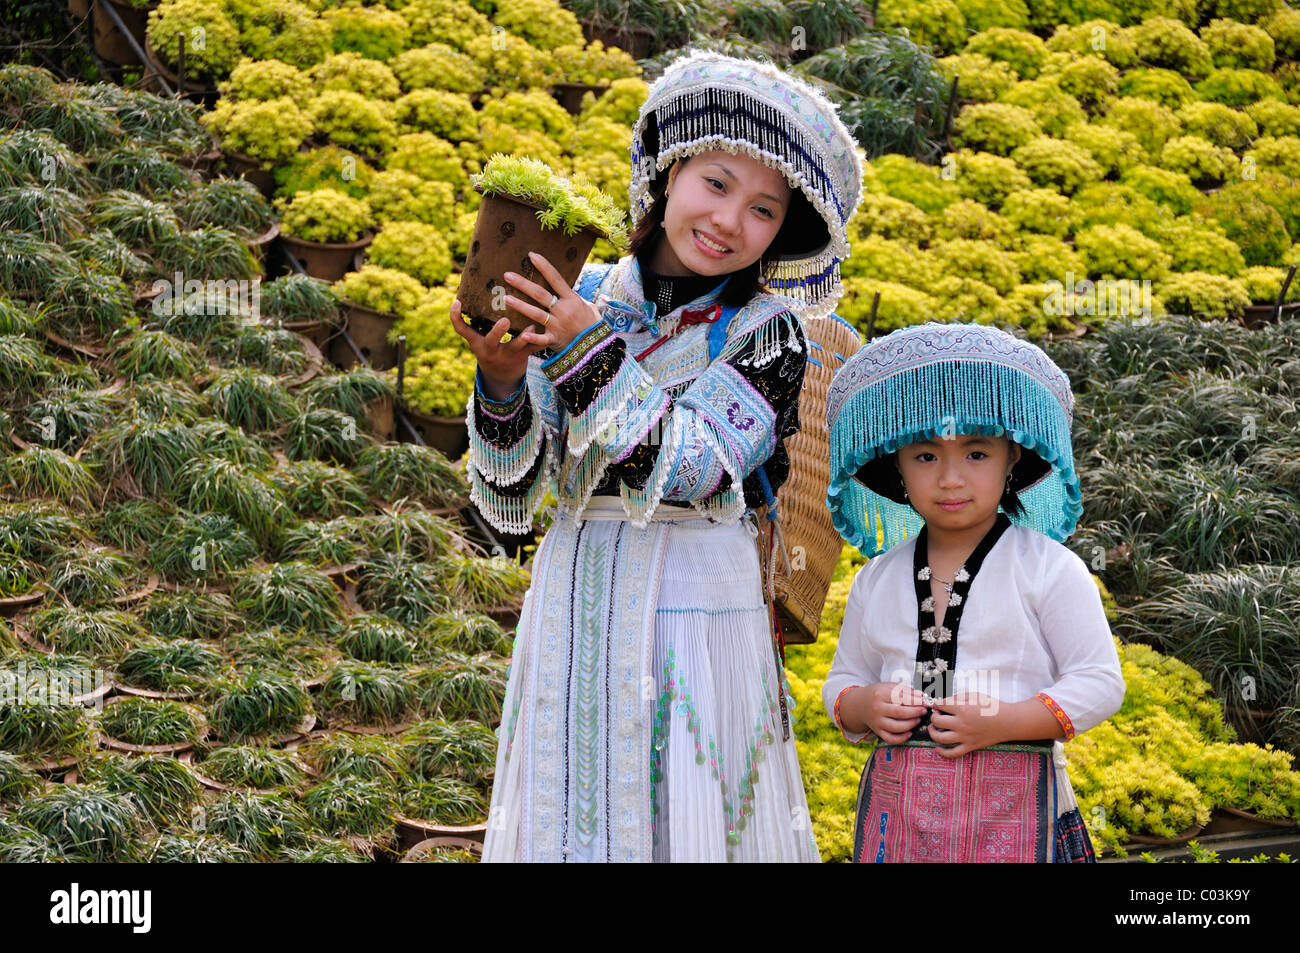 Tourists wearing a traditional costume, Sapa, Vietnam, Asia - Stock Image